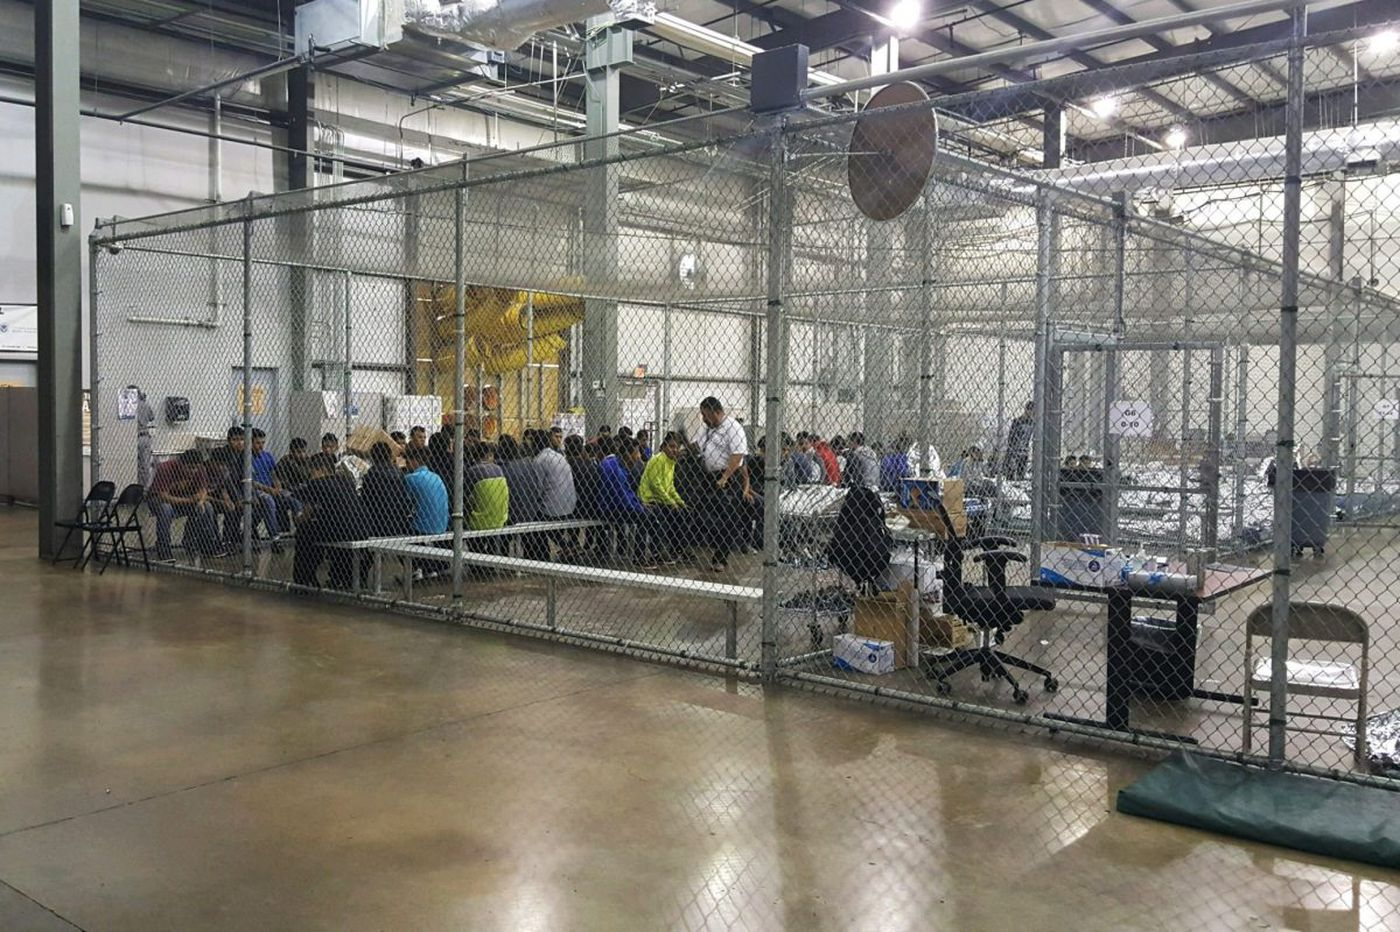 FactCheck: Questions and answers on border detention of children